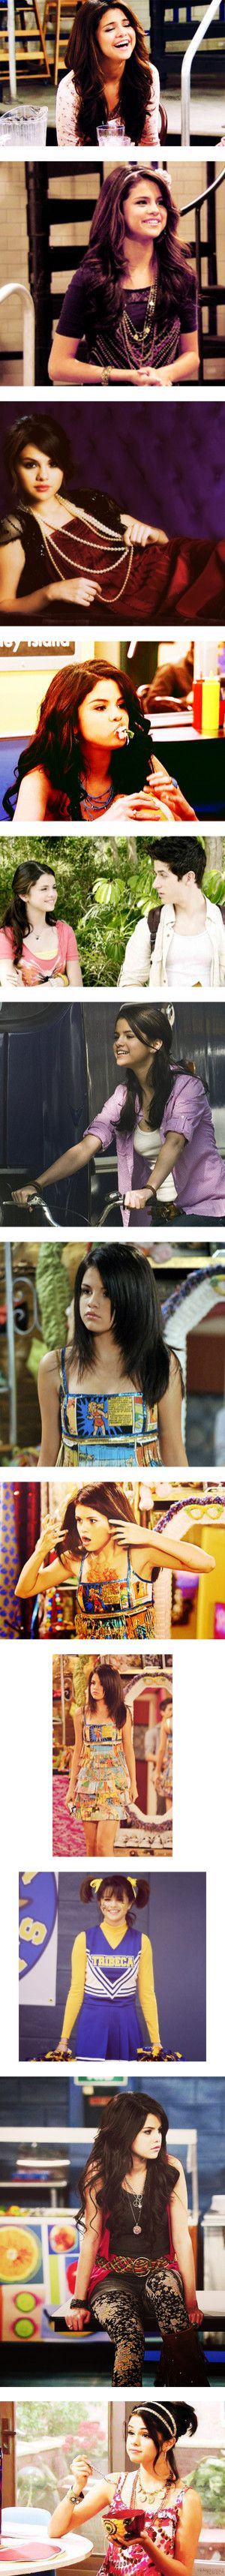 """Alex Russo Appreciation Post"" by simpleoutfits ❤ miss her wish old Selena was here but it's Alex"